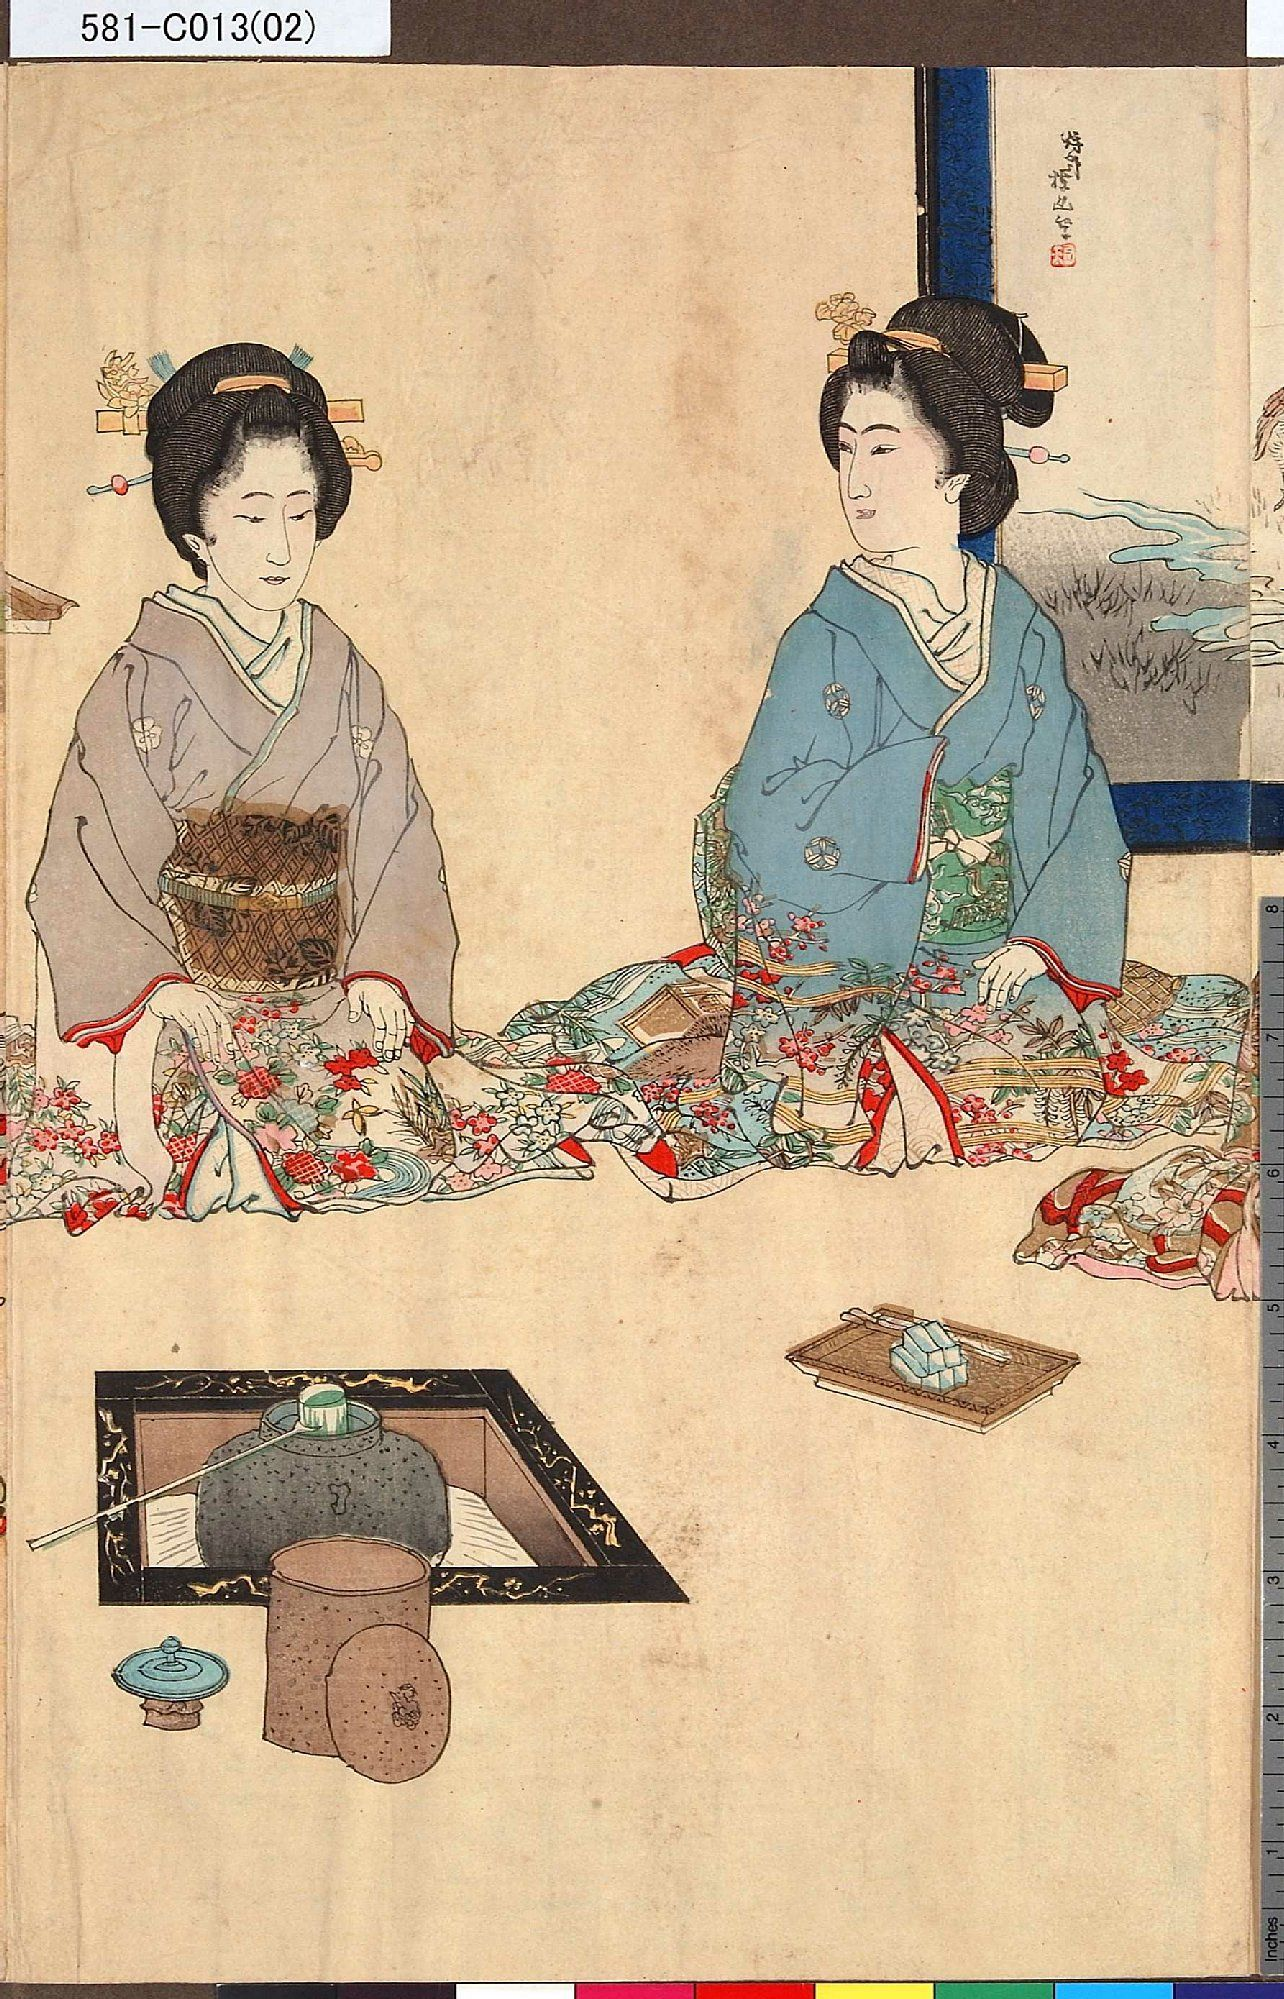 Japanese Tea Ceremony Painting Google Search Japanese Prints Japanese Woodblock Printing Japan Art